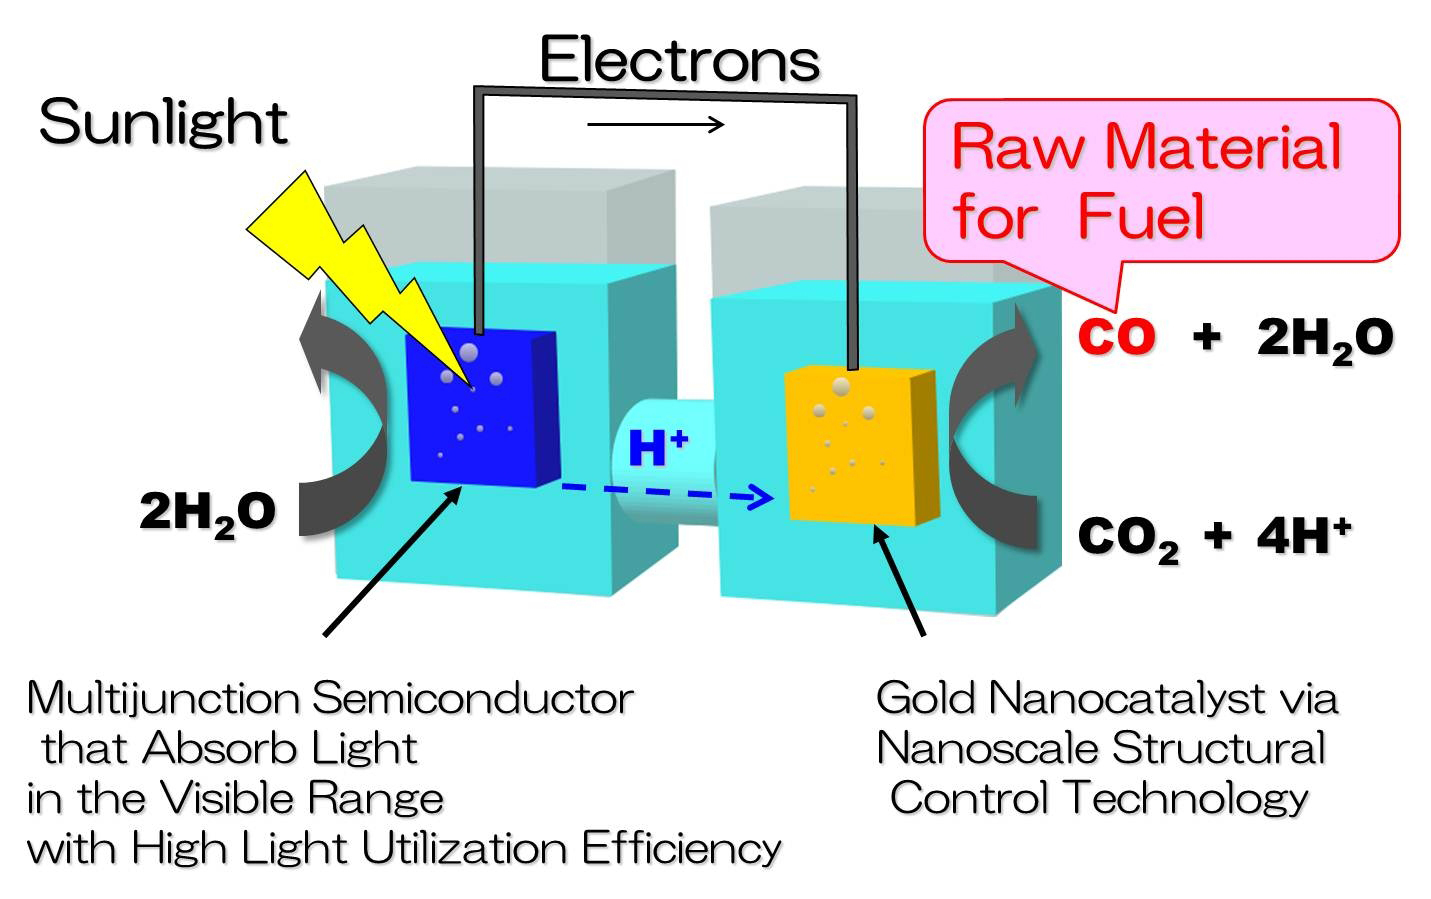 Toshiba Develops Worlds Highest Efficiency Artificial Wiring Diagram Photosynthesis Technology For Generation Of Fuel And Feedstock From Carbon Dioxide Business Wire